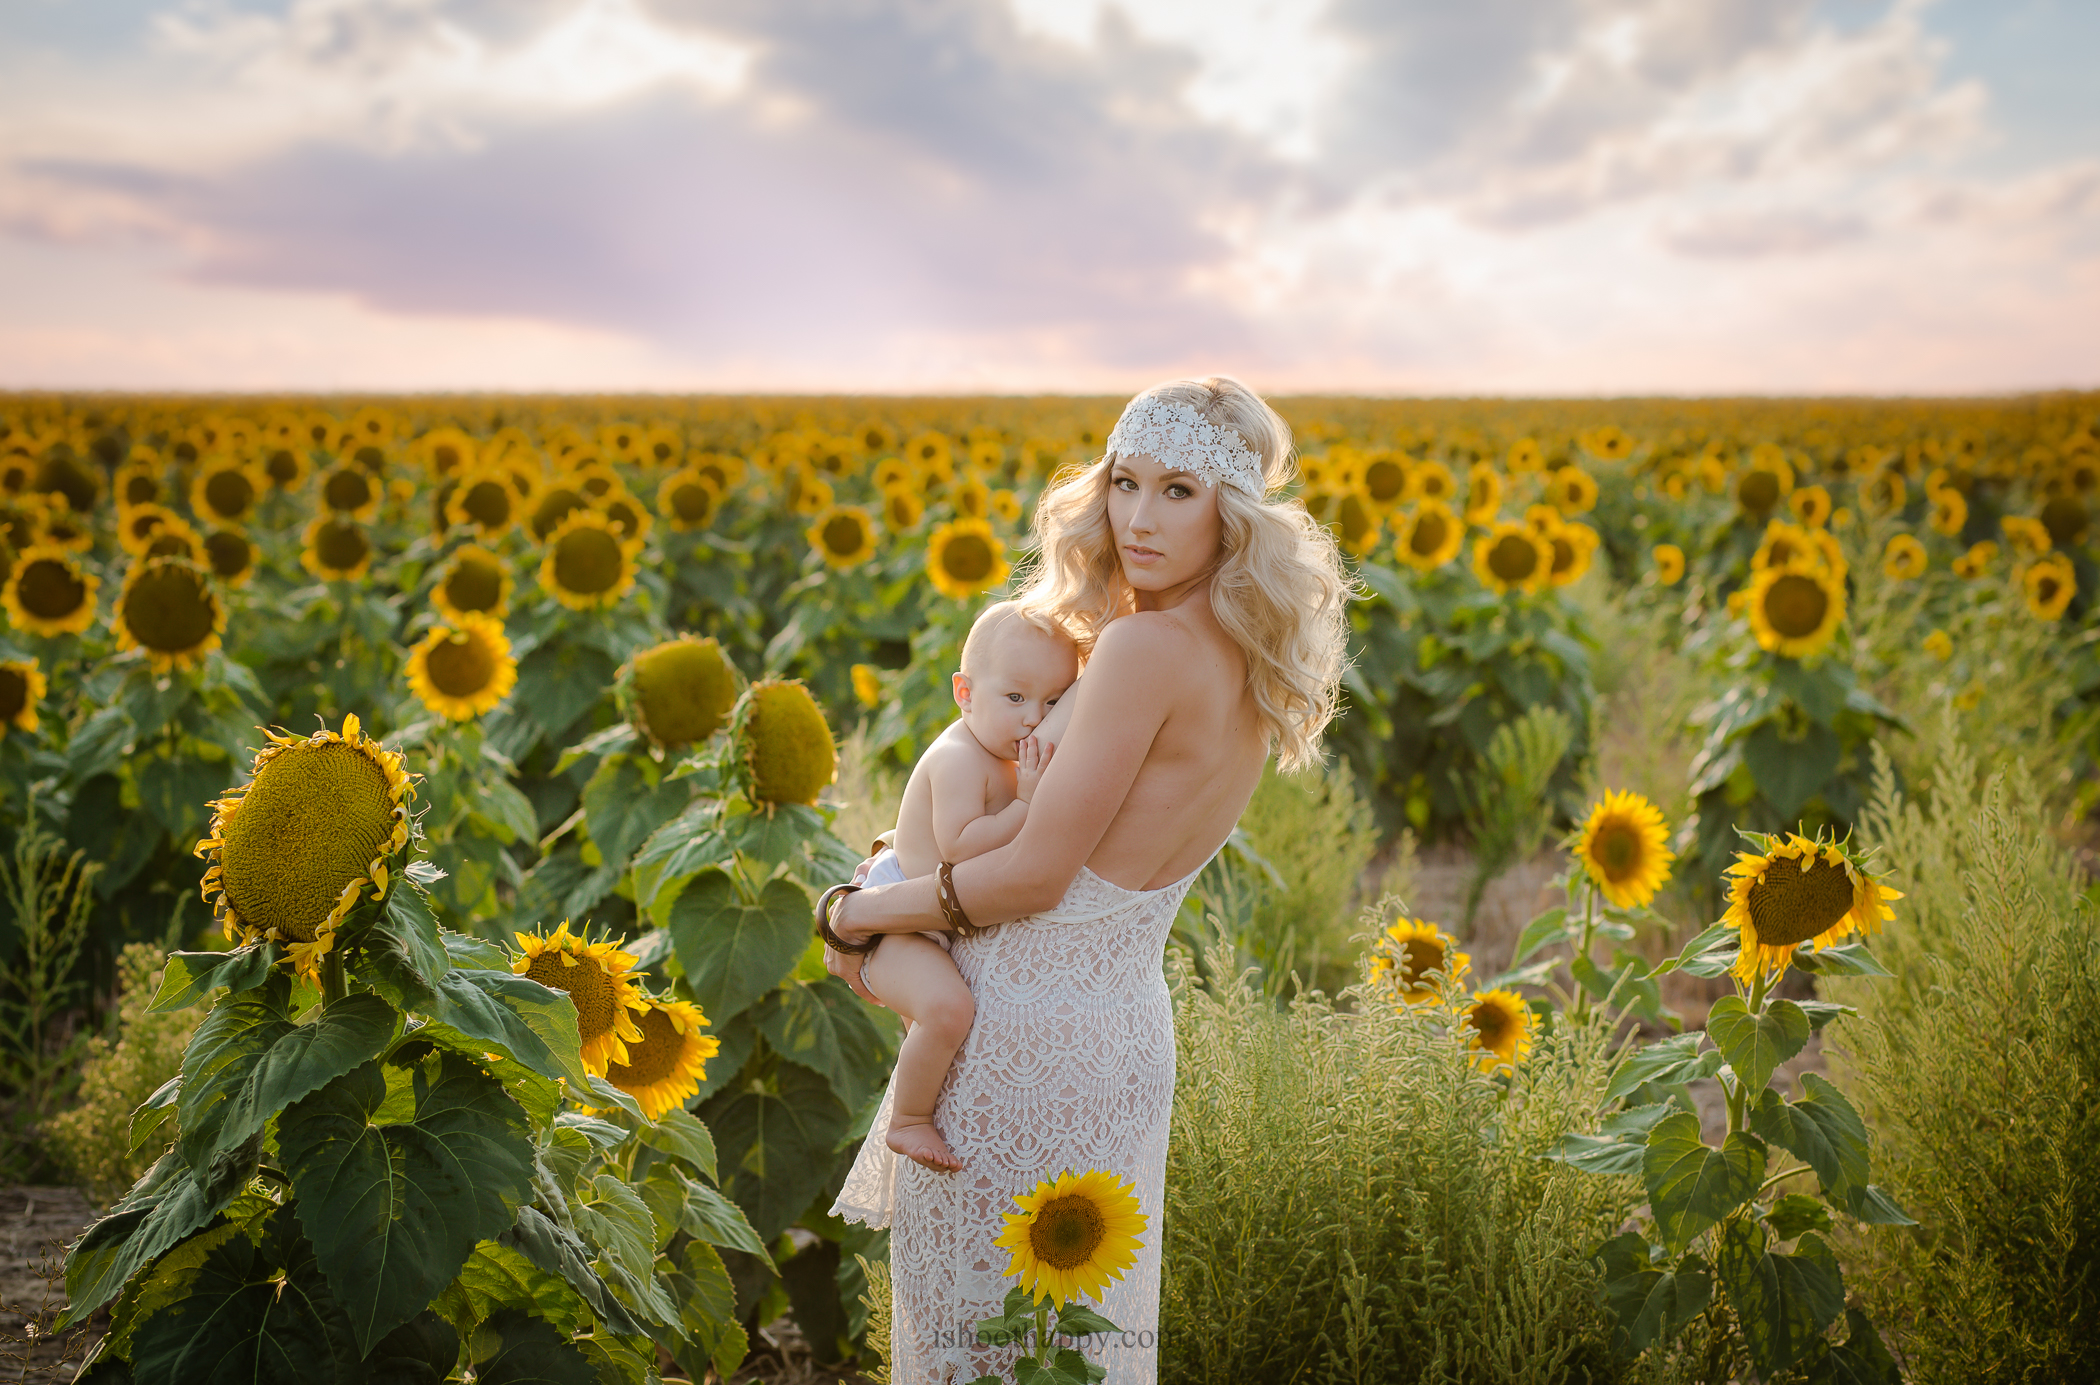 Denver maternity photographer, Denver maternity photography, Maternity photography Denver, Denver Family photographer, Denver Senior photographer, Denver Senior photography, Maternity, Sunflowers, Sunflower Fields, Love